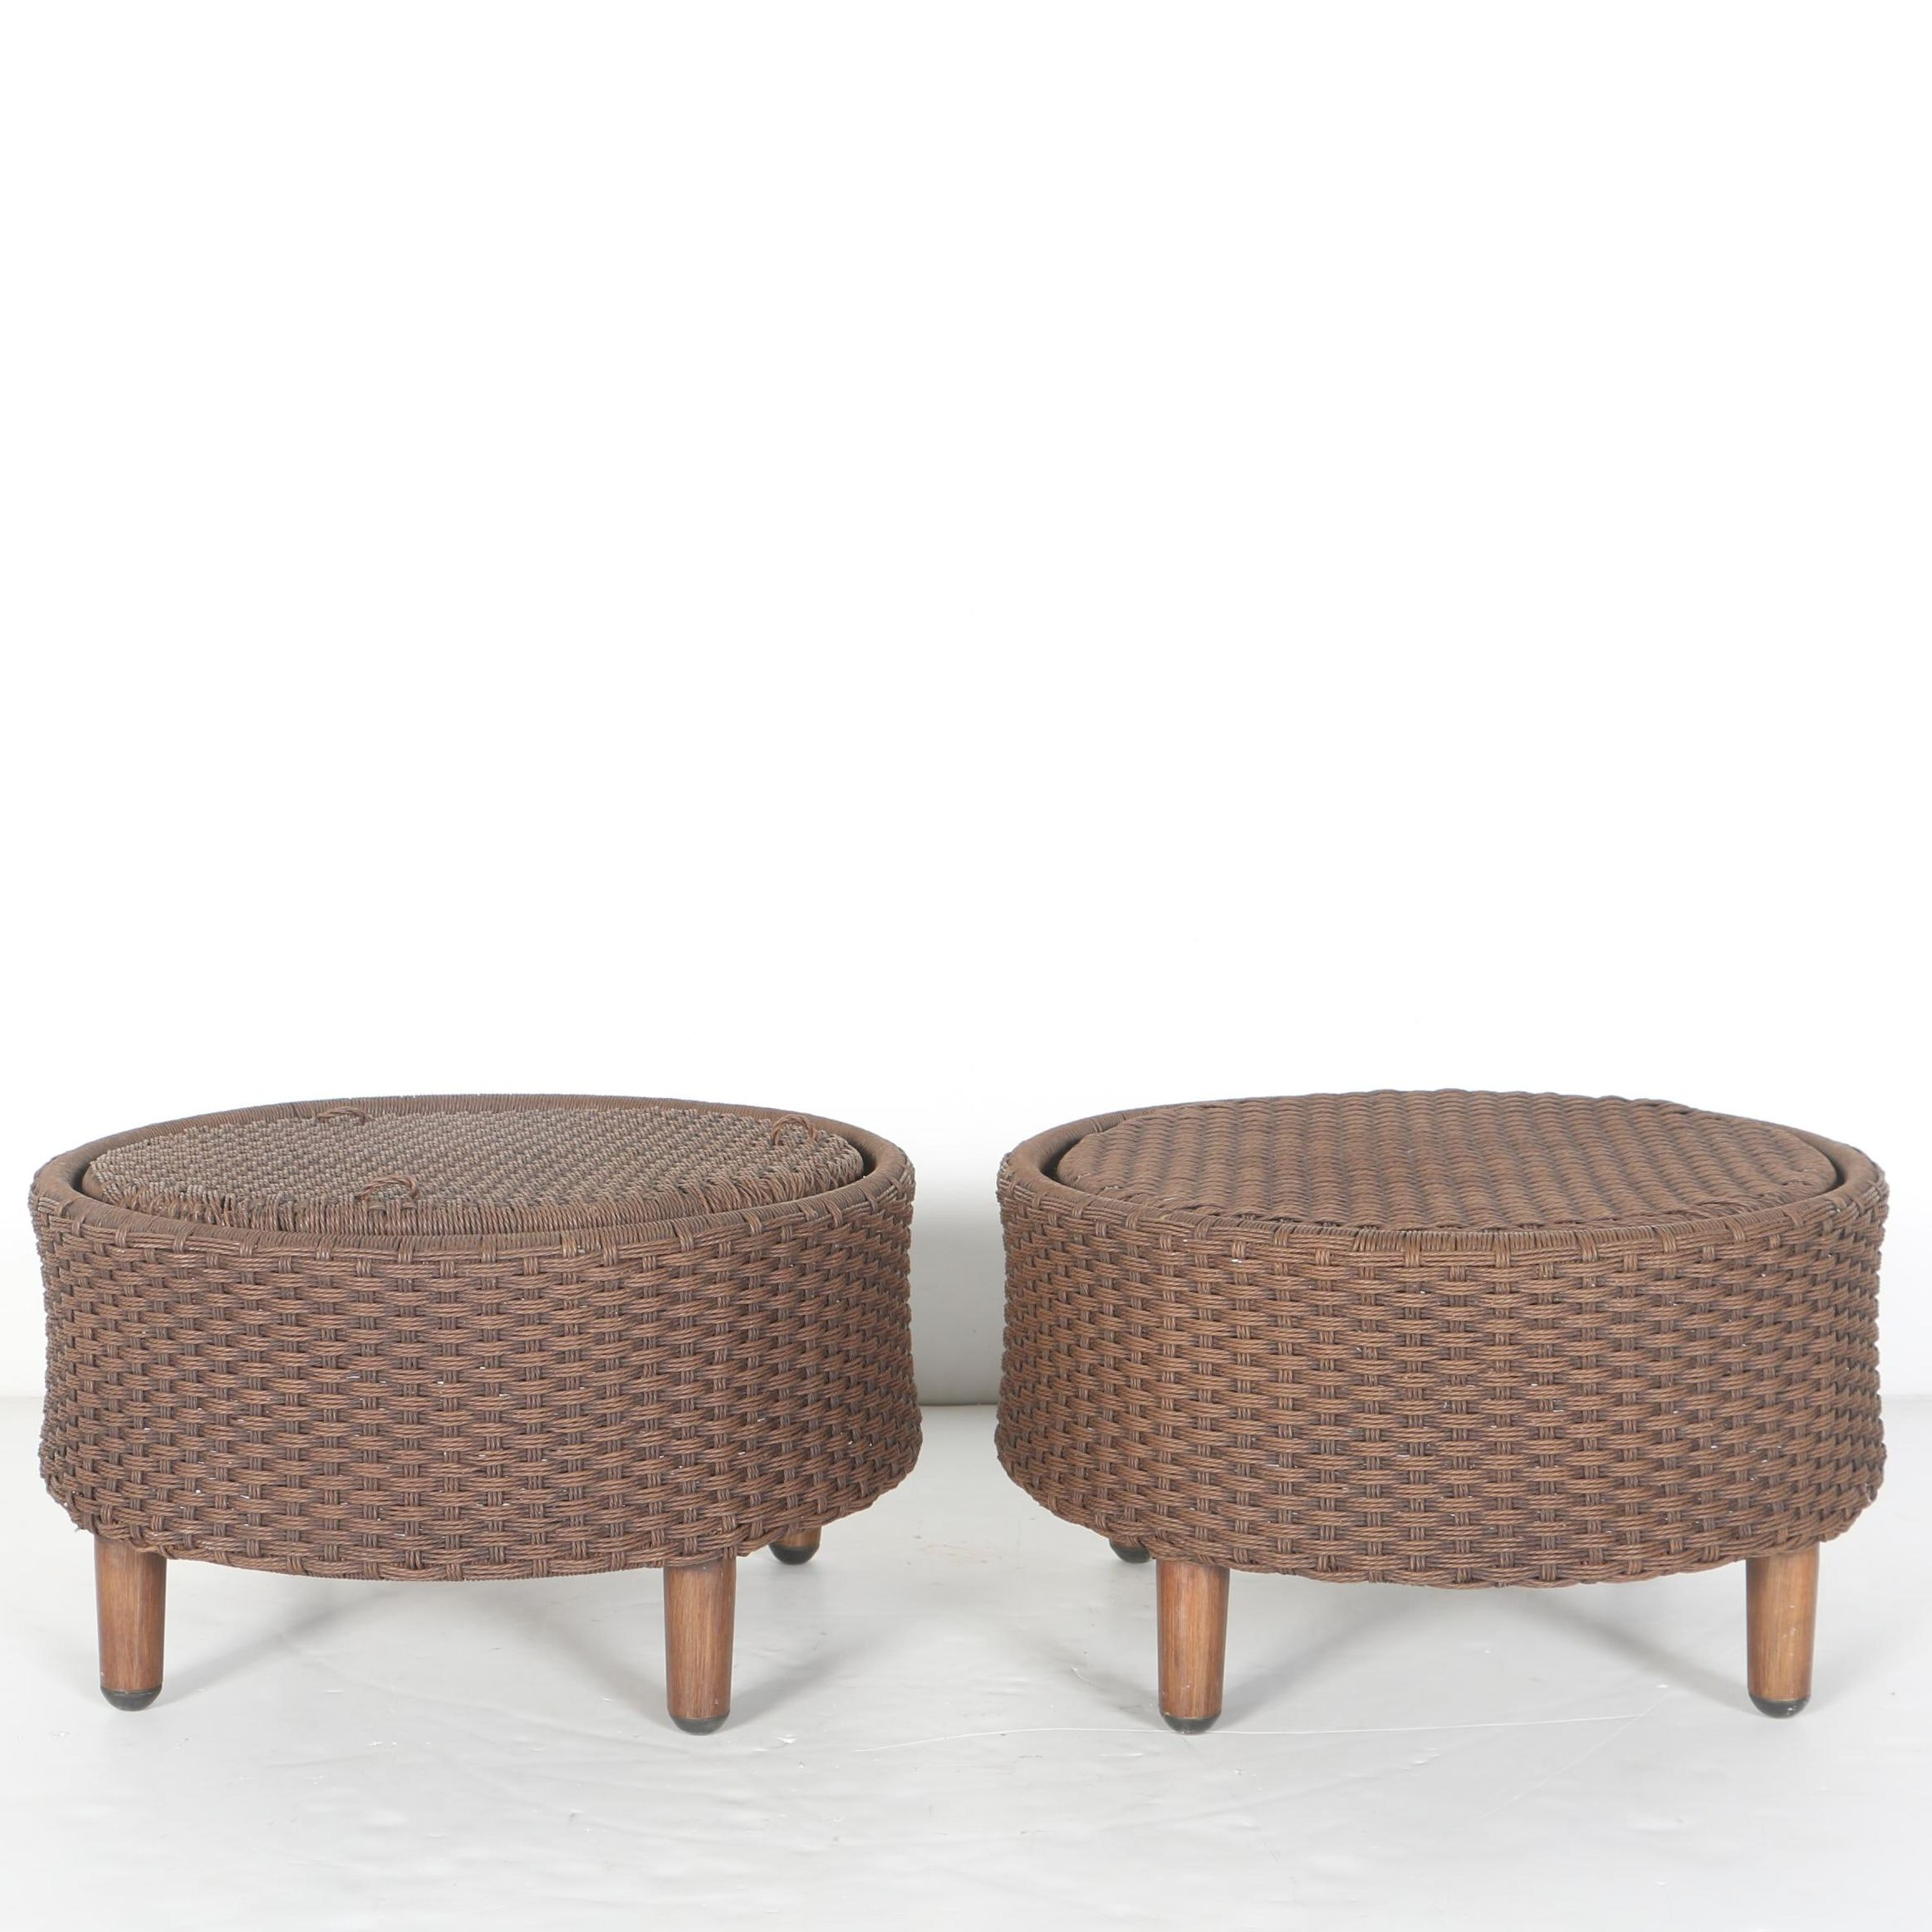 Pair of Brown Woven Foot Stools